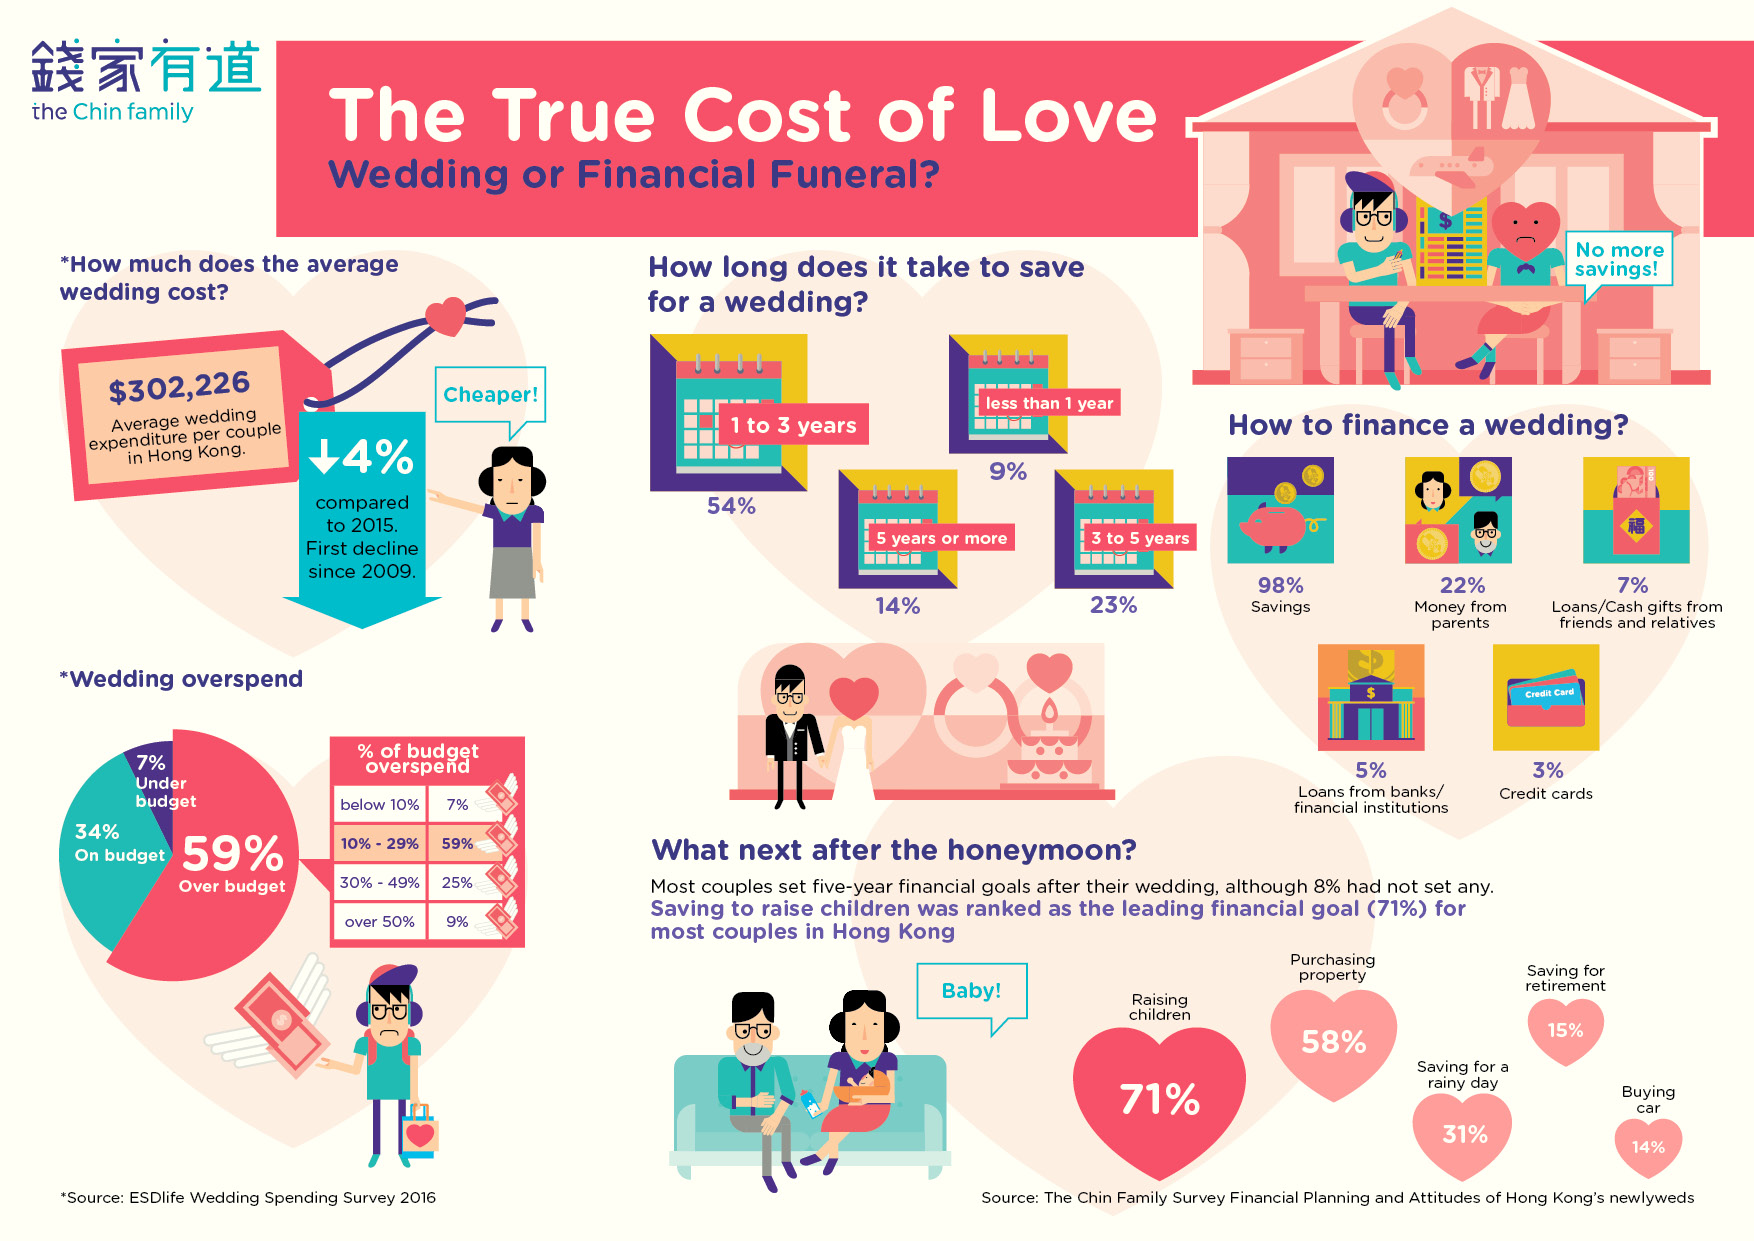 The True Cost of Love – Wedding or Financial Funeral?